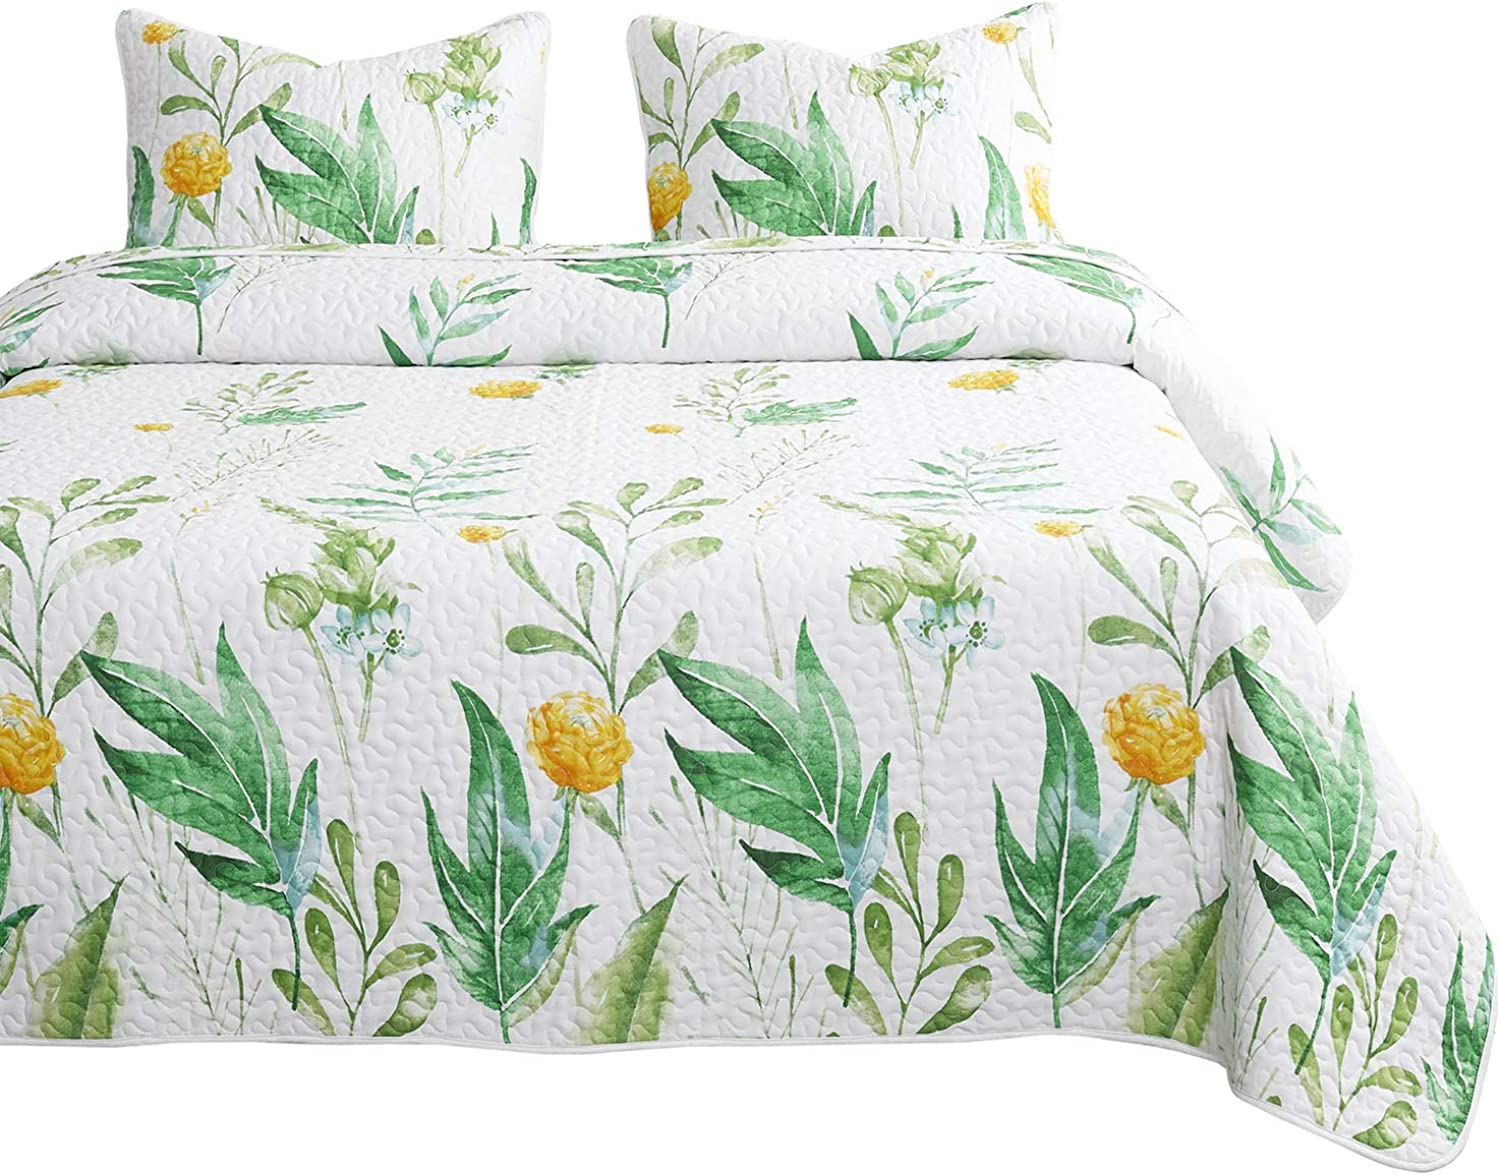 Wake In Cloud - Floral Quilt Set, Botanical Flowers Green Tree Leaves Pattern Printed on White, 100% Cotton Fabric with Soft Microfiber Inner Fill Bedspread Coverlet Bedding (3pcs, Queen Size)